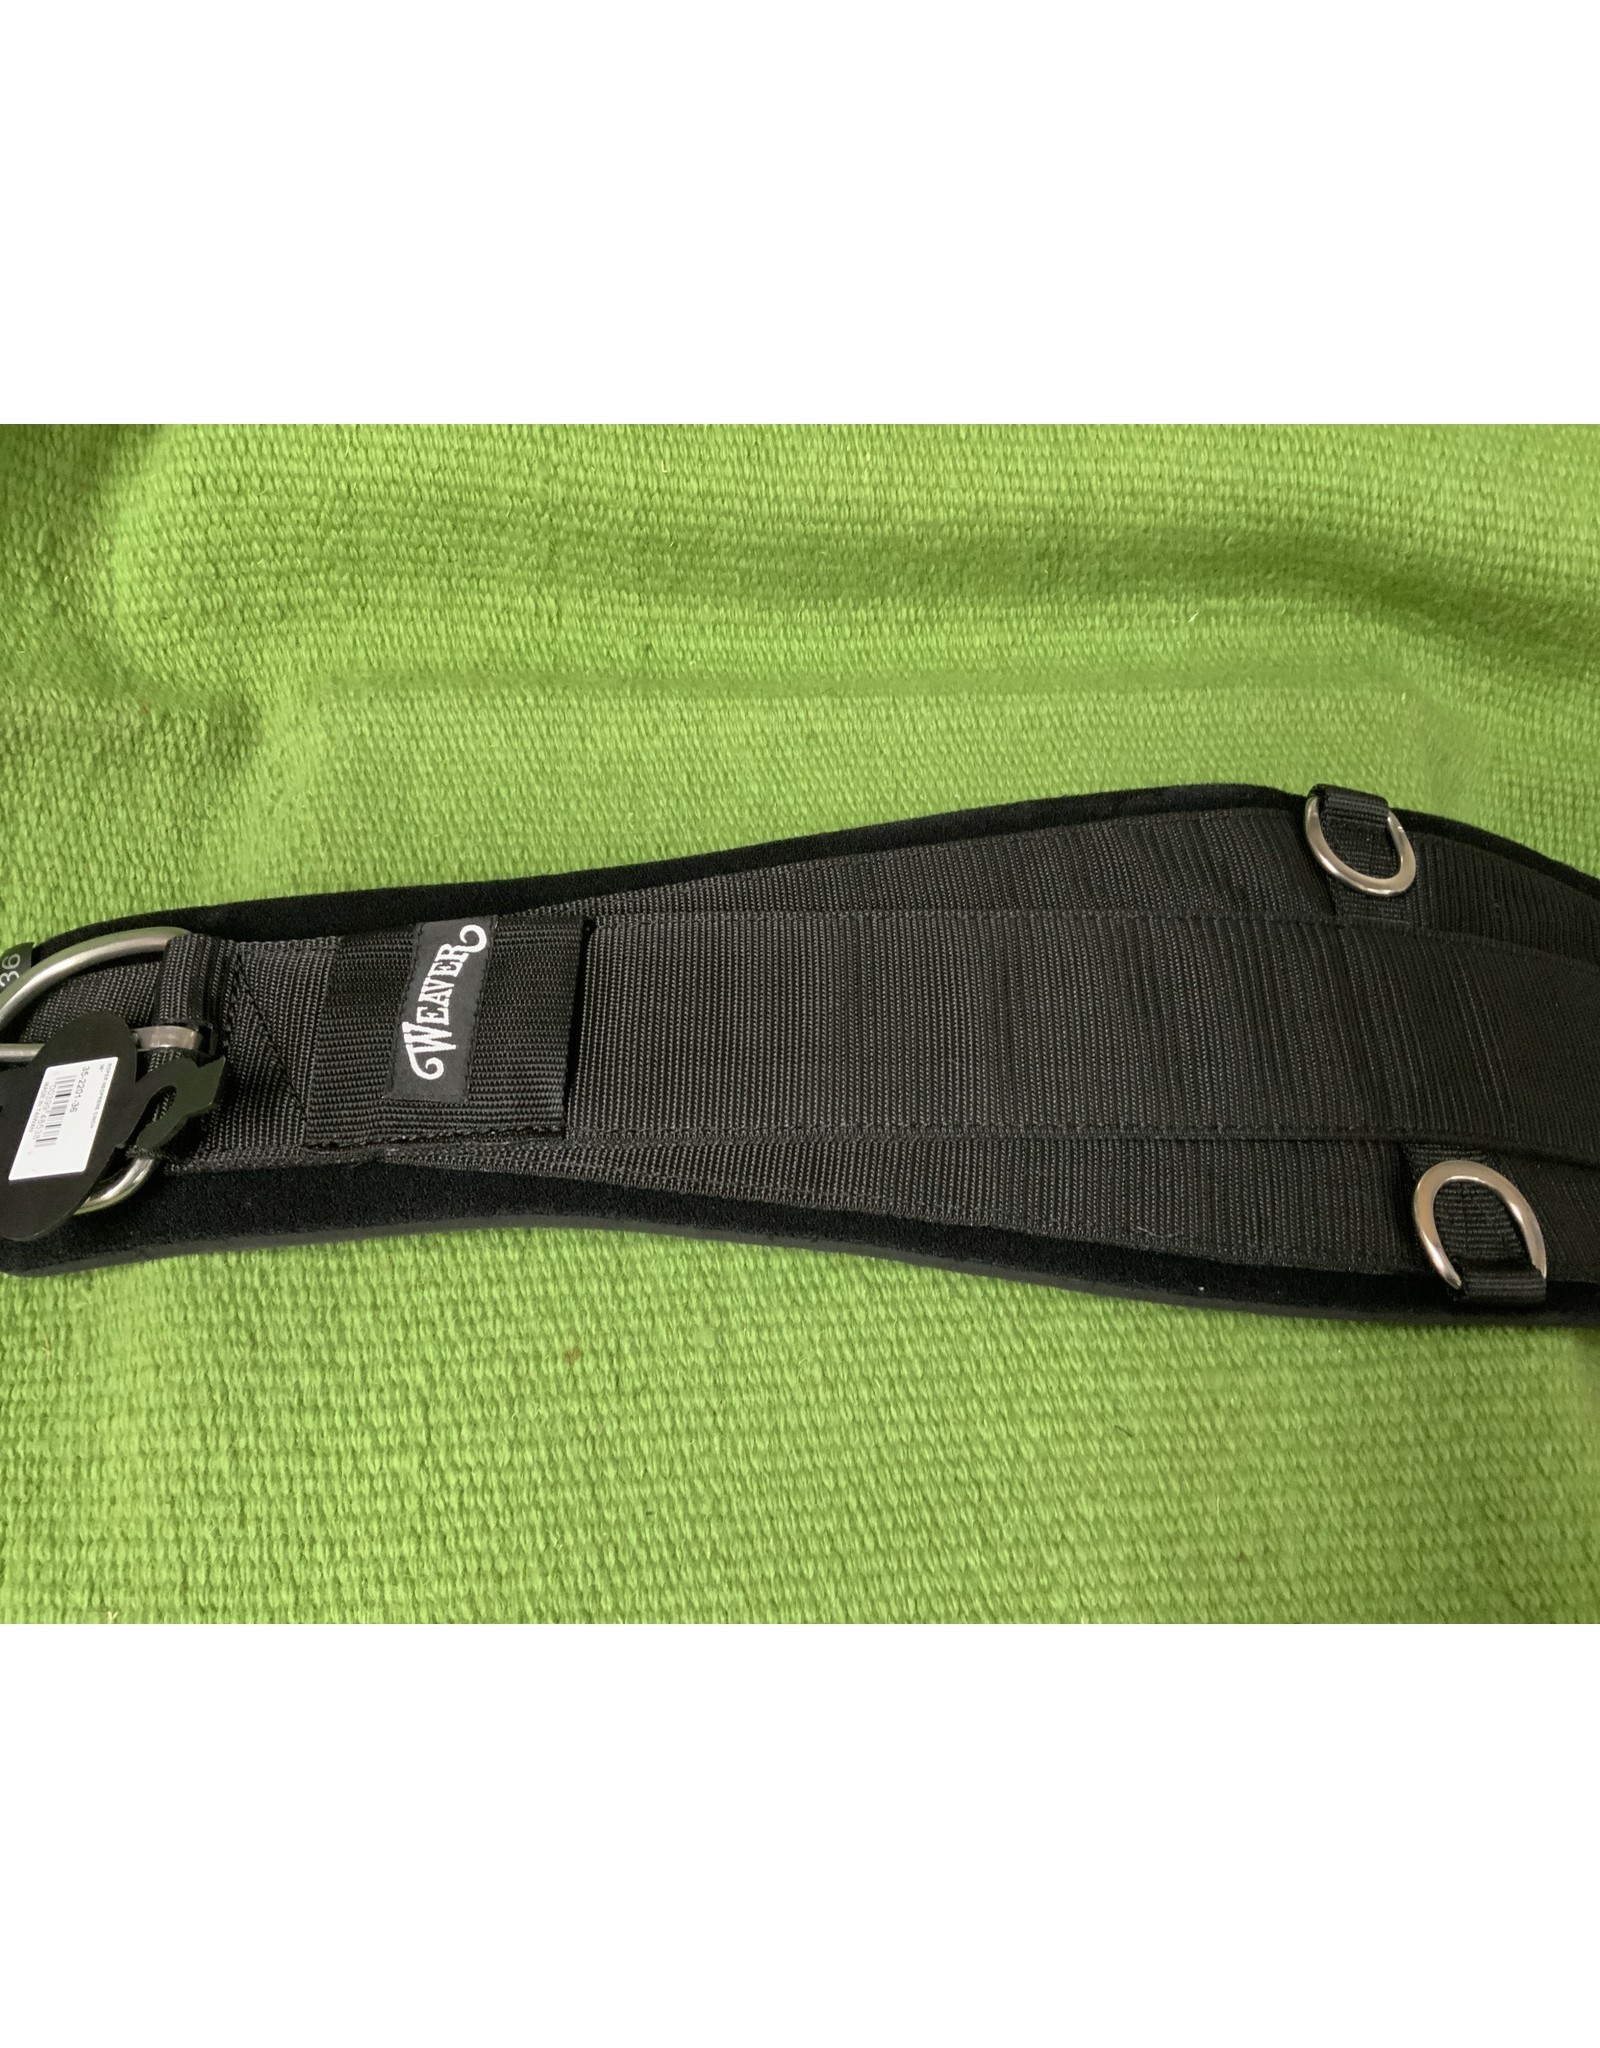 CIN* Neoprene Black Roper Cinch 35-2201-36 36""